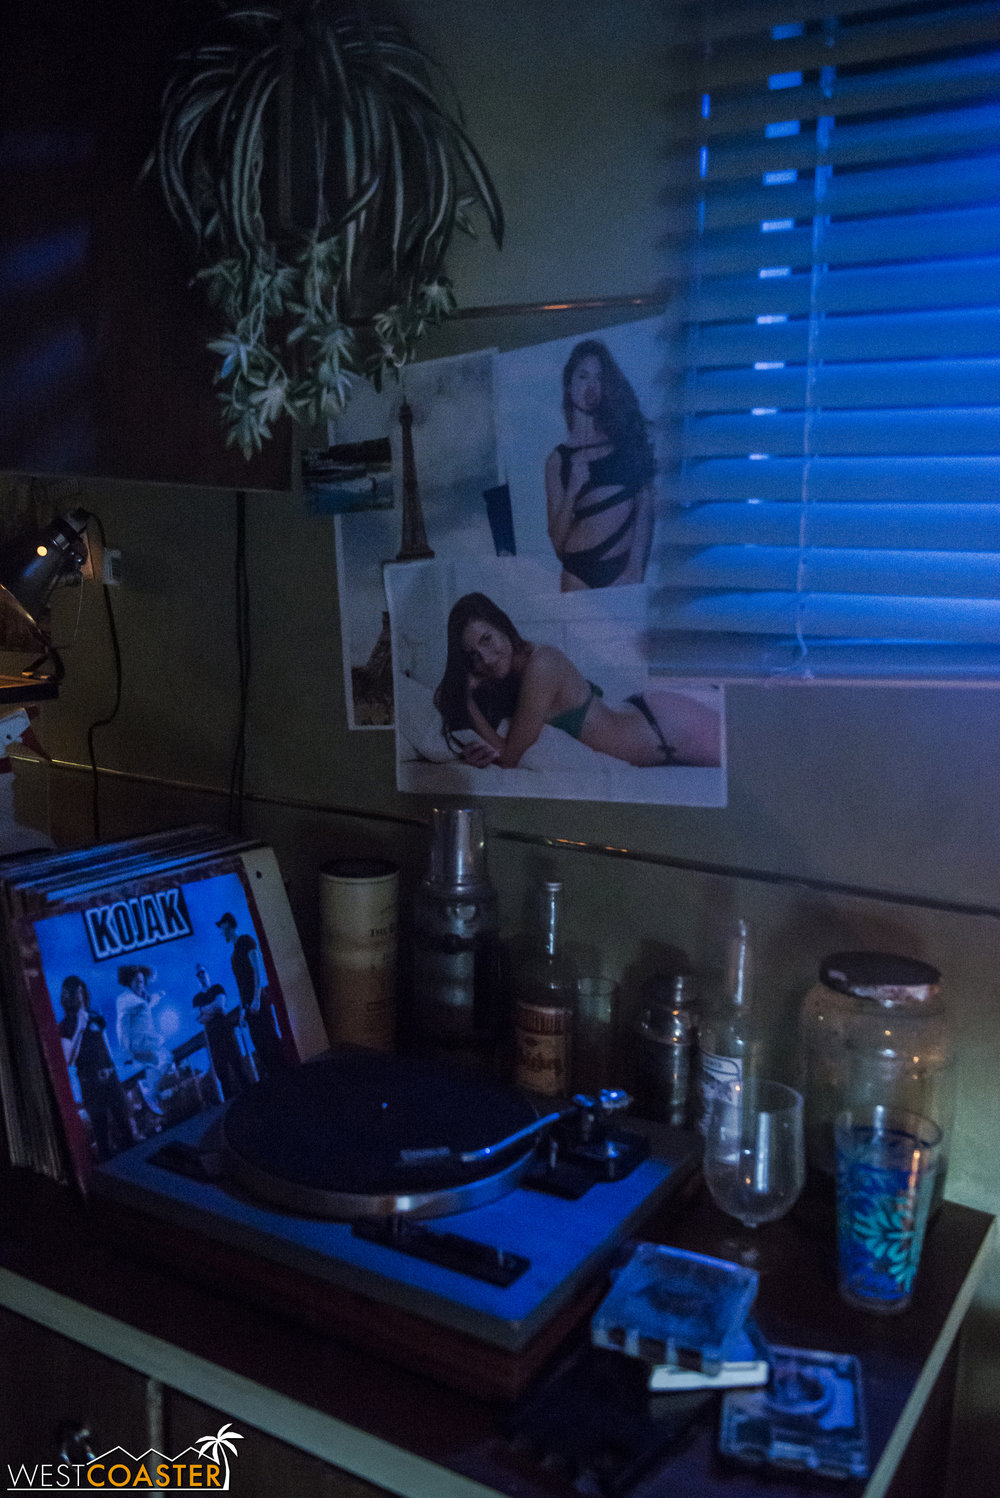 Ash room from his teenage years looks... like a room a typical teenage boy would set up.